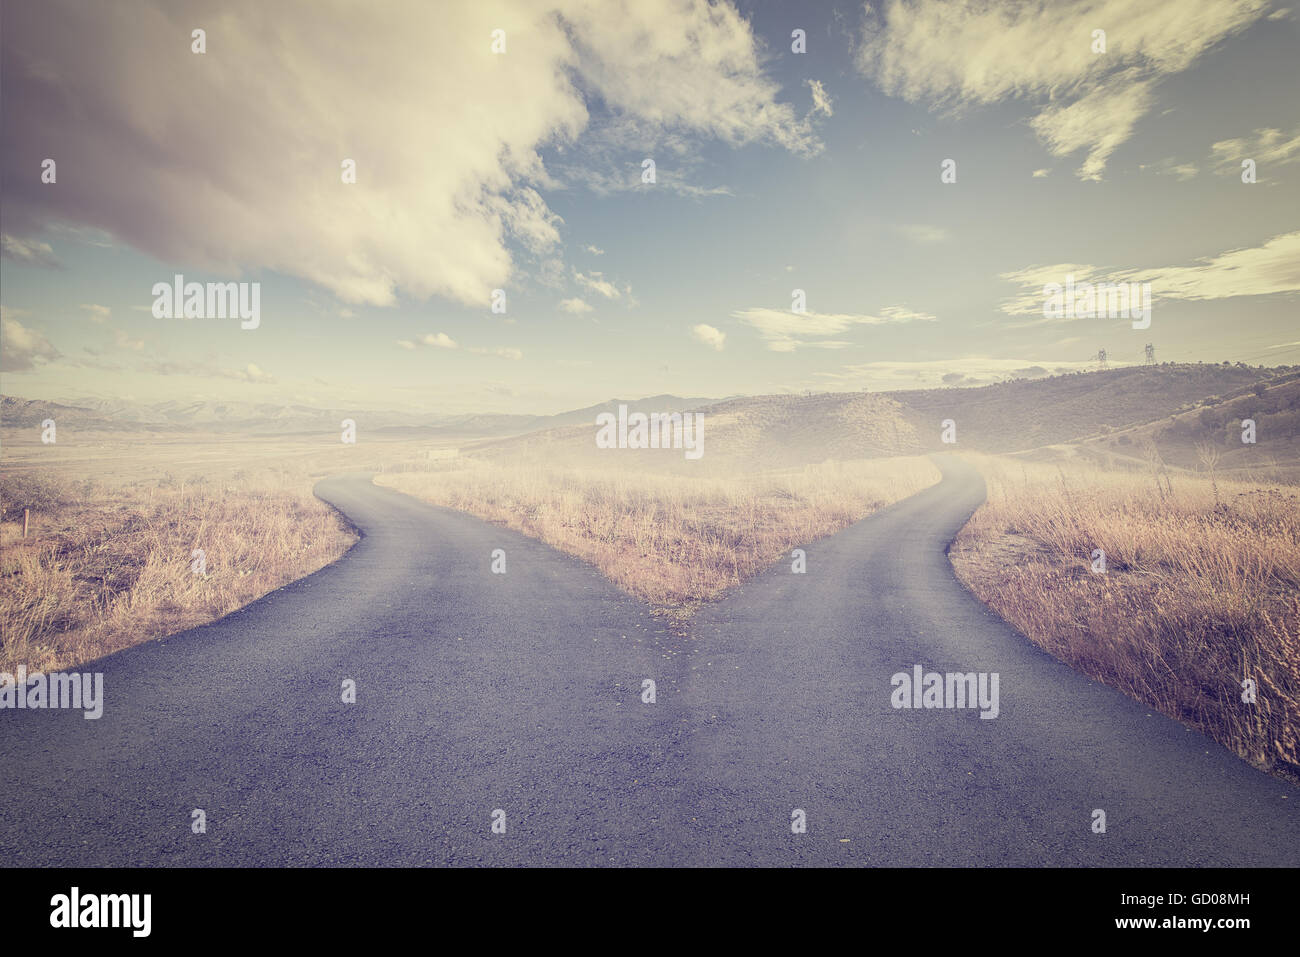 Concept of choice with crossroads spliting in two ways - Stock Image